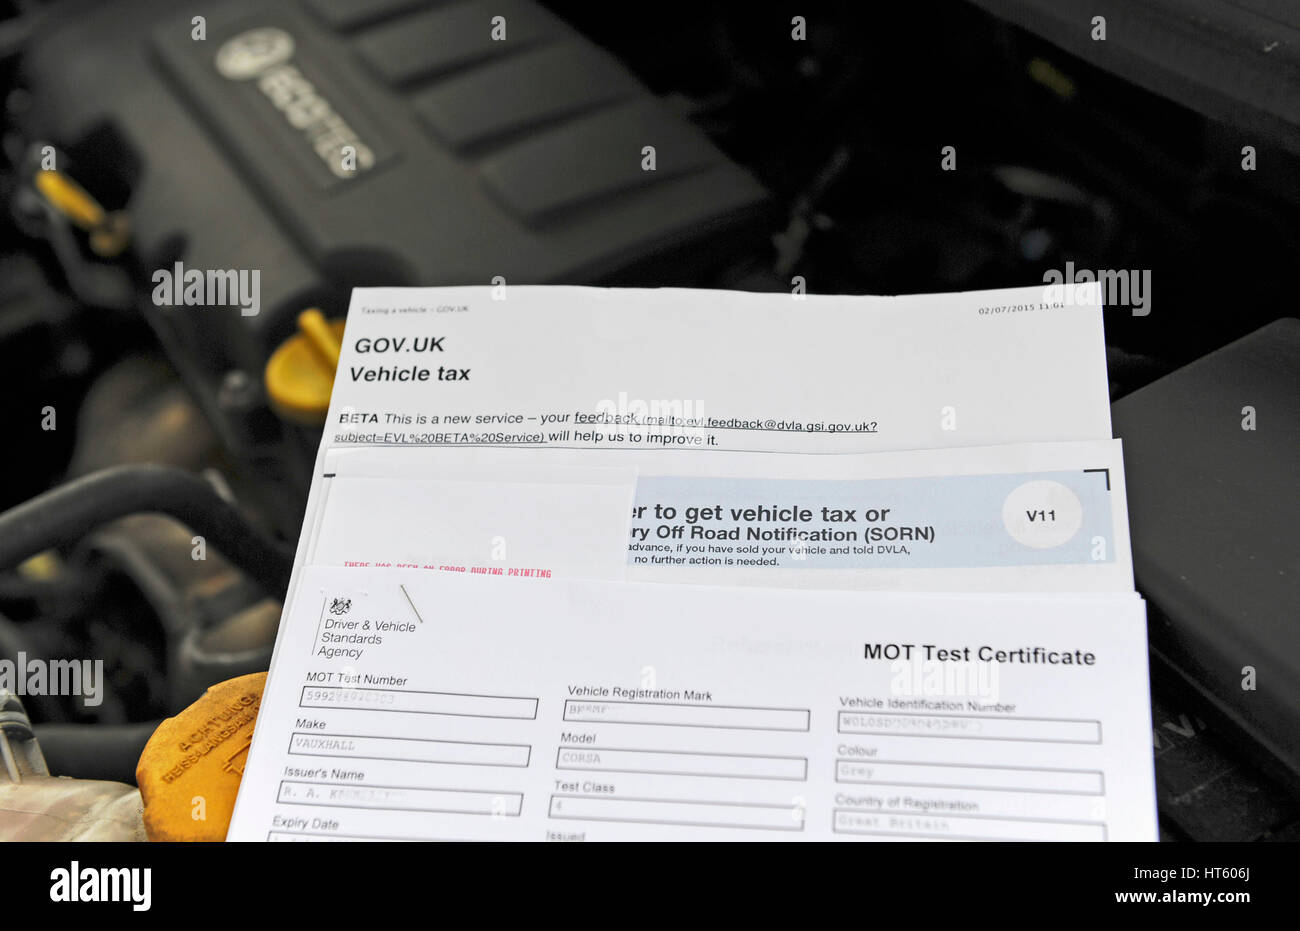 UK vehicle MOT test certificate and tax renewal form - Stock Image